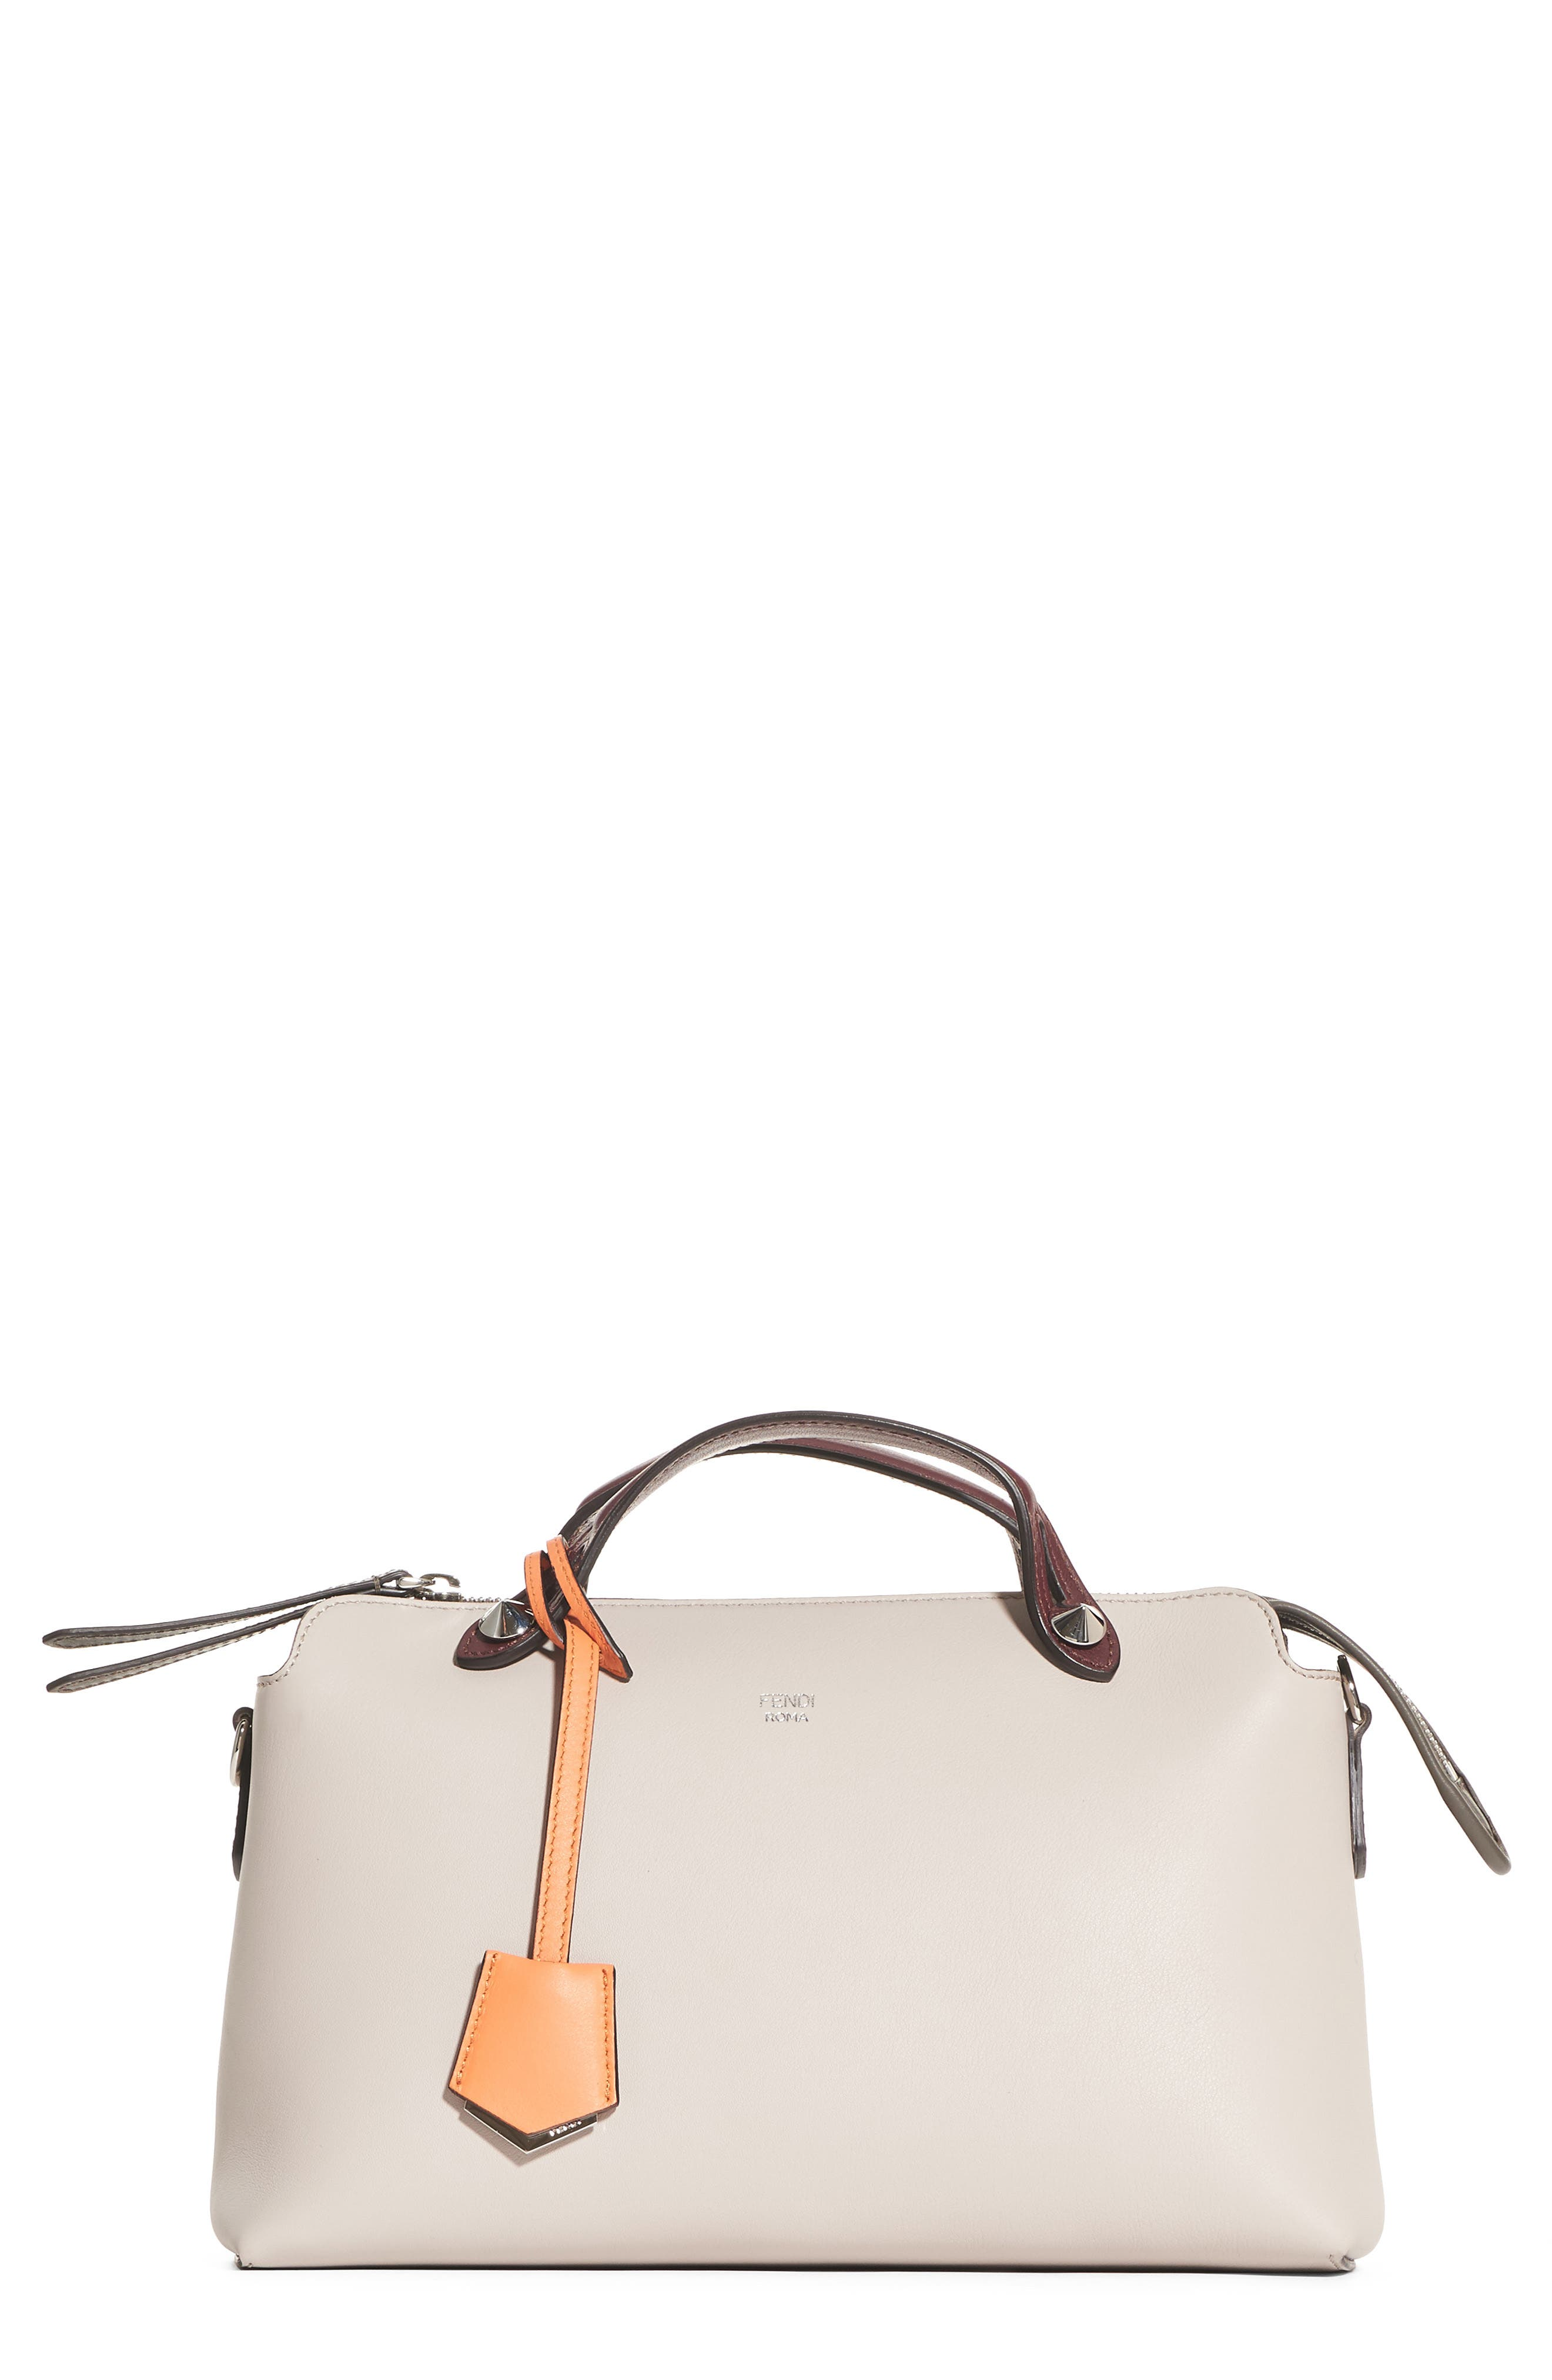 Main Image - Fendi 'Medium By the Way' Colorblock Leather Shoulder Bag